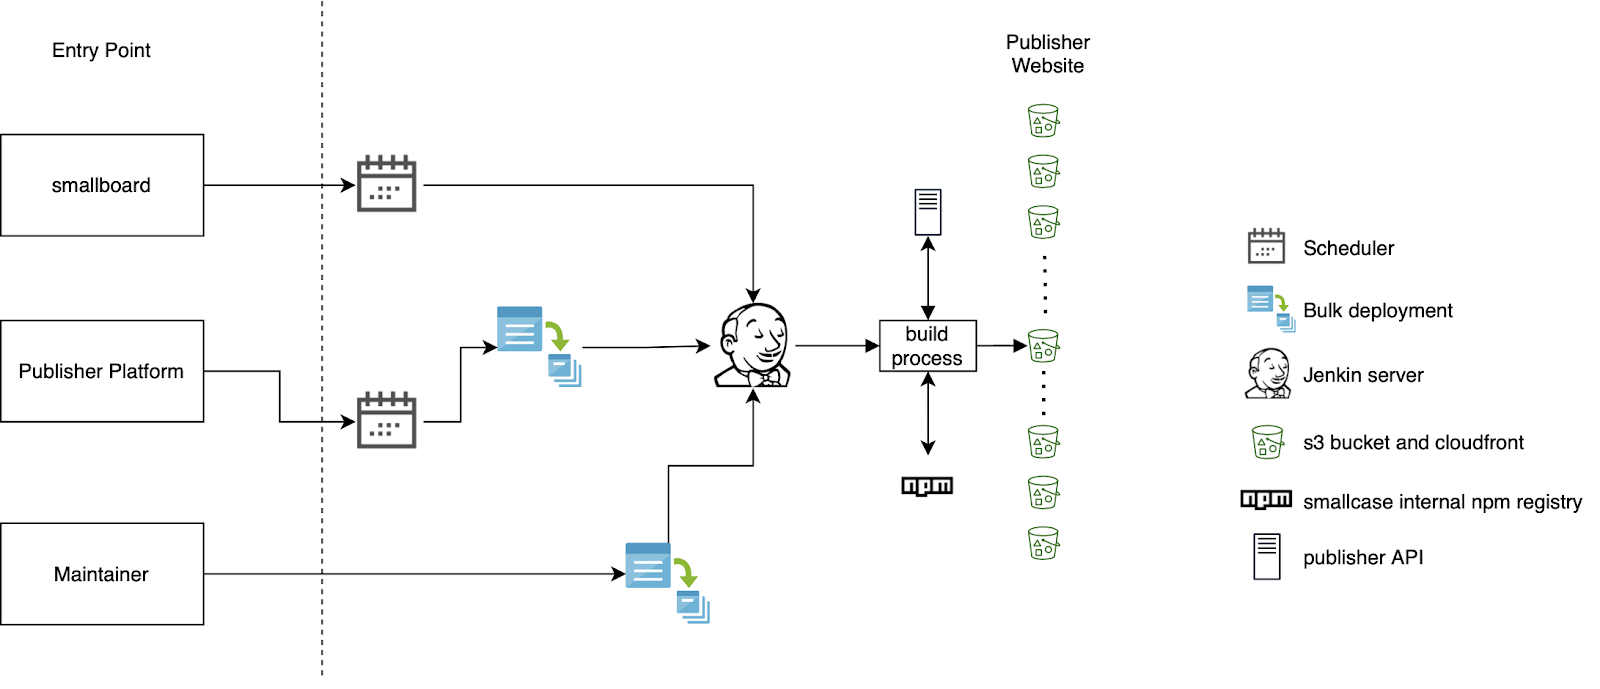 Deployment process of v1 of microsite